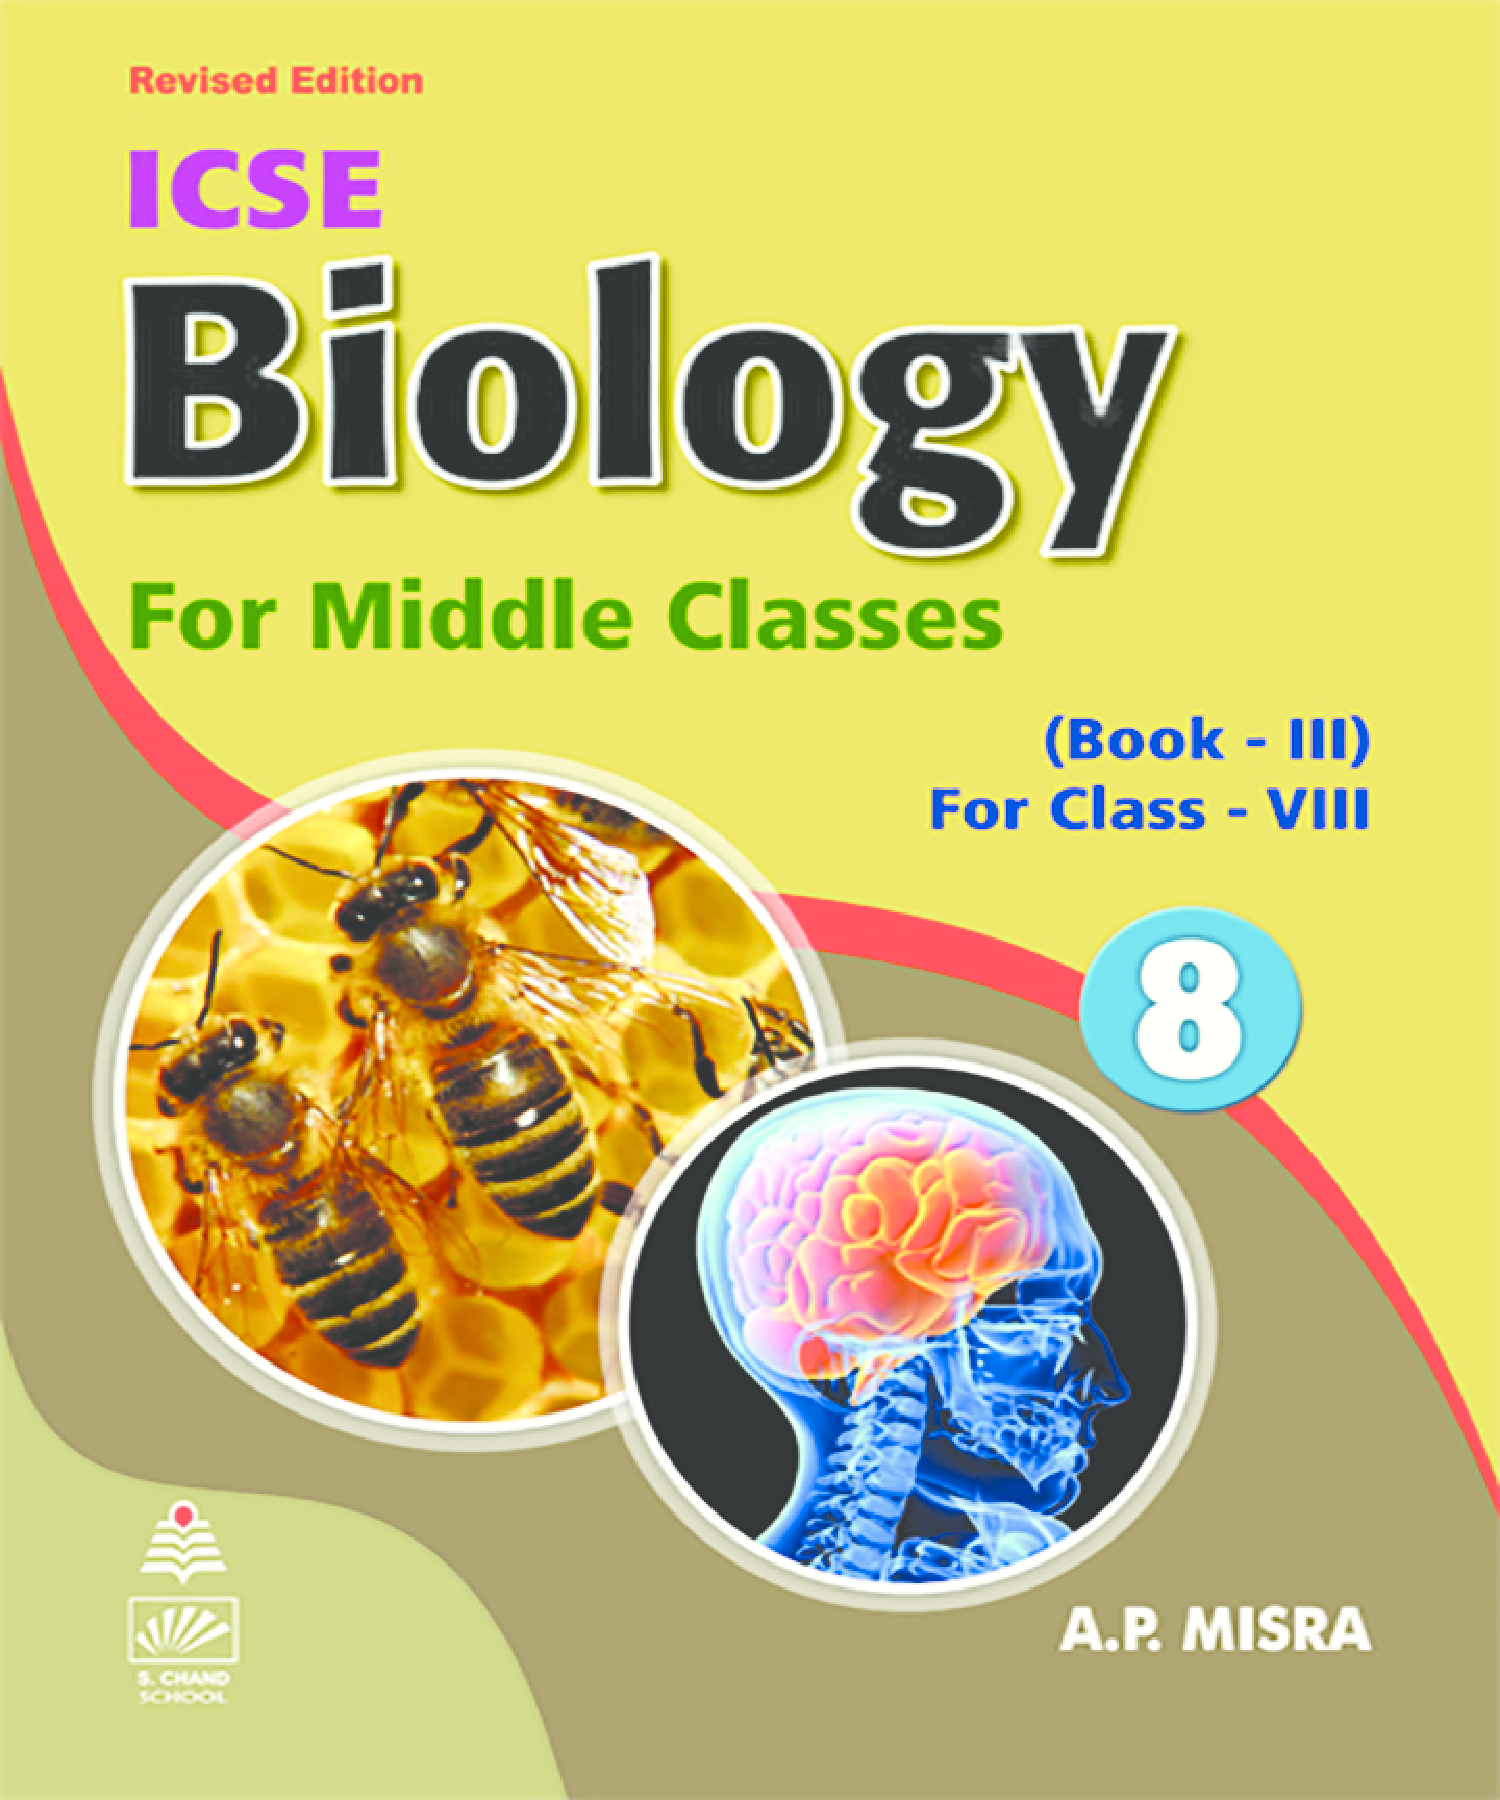 Biology For Middle Classes Book-III Class-VIII - Page 1